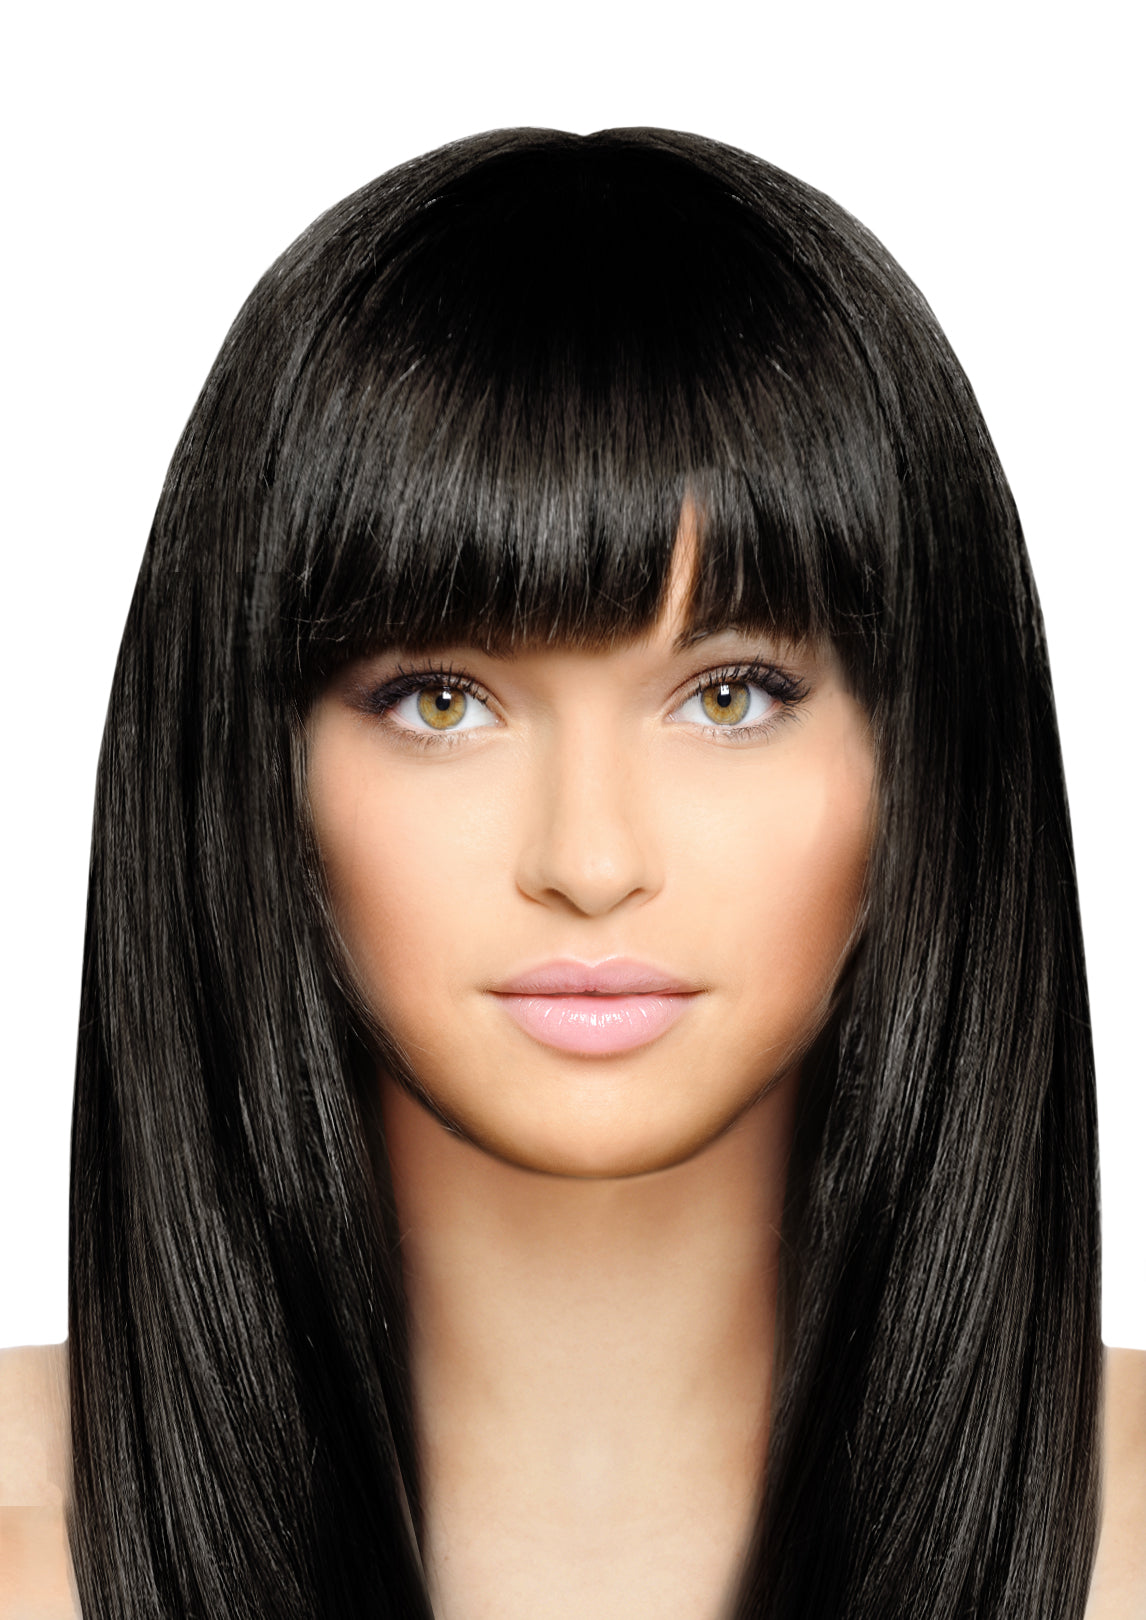 Dress-up Halloween 1pc Black Color for Women on Weft Clips Mia\u00ae Clip-n-Hair\u00ae Teens Clip On Synthetic Wig Hair Piece